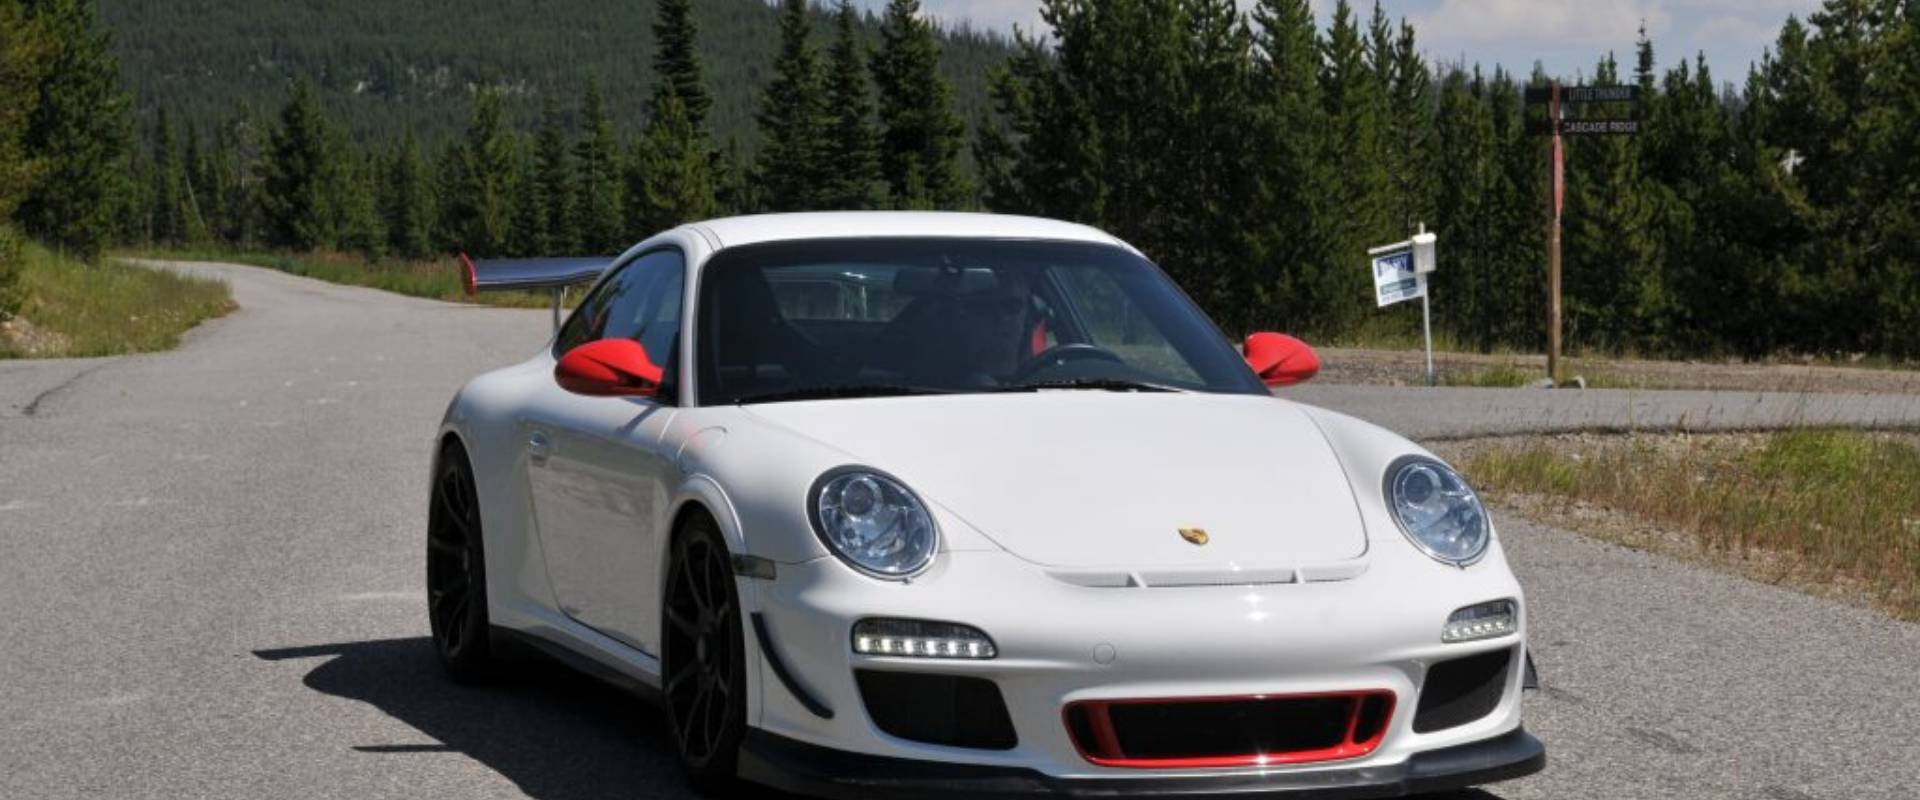 2 Days, 1600 miles, and a few Mountains in the Porsche 911 GT3 RS